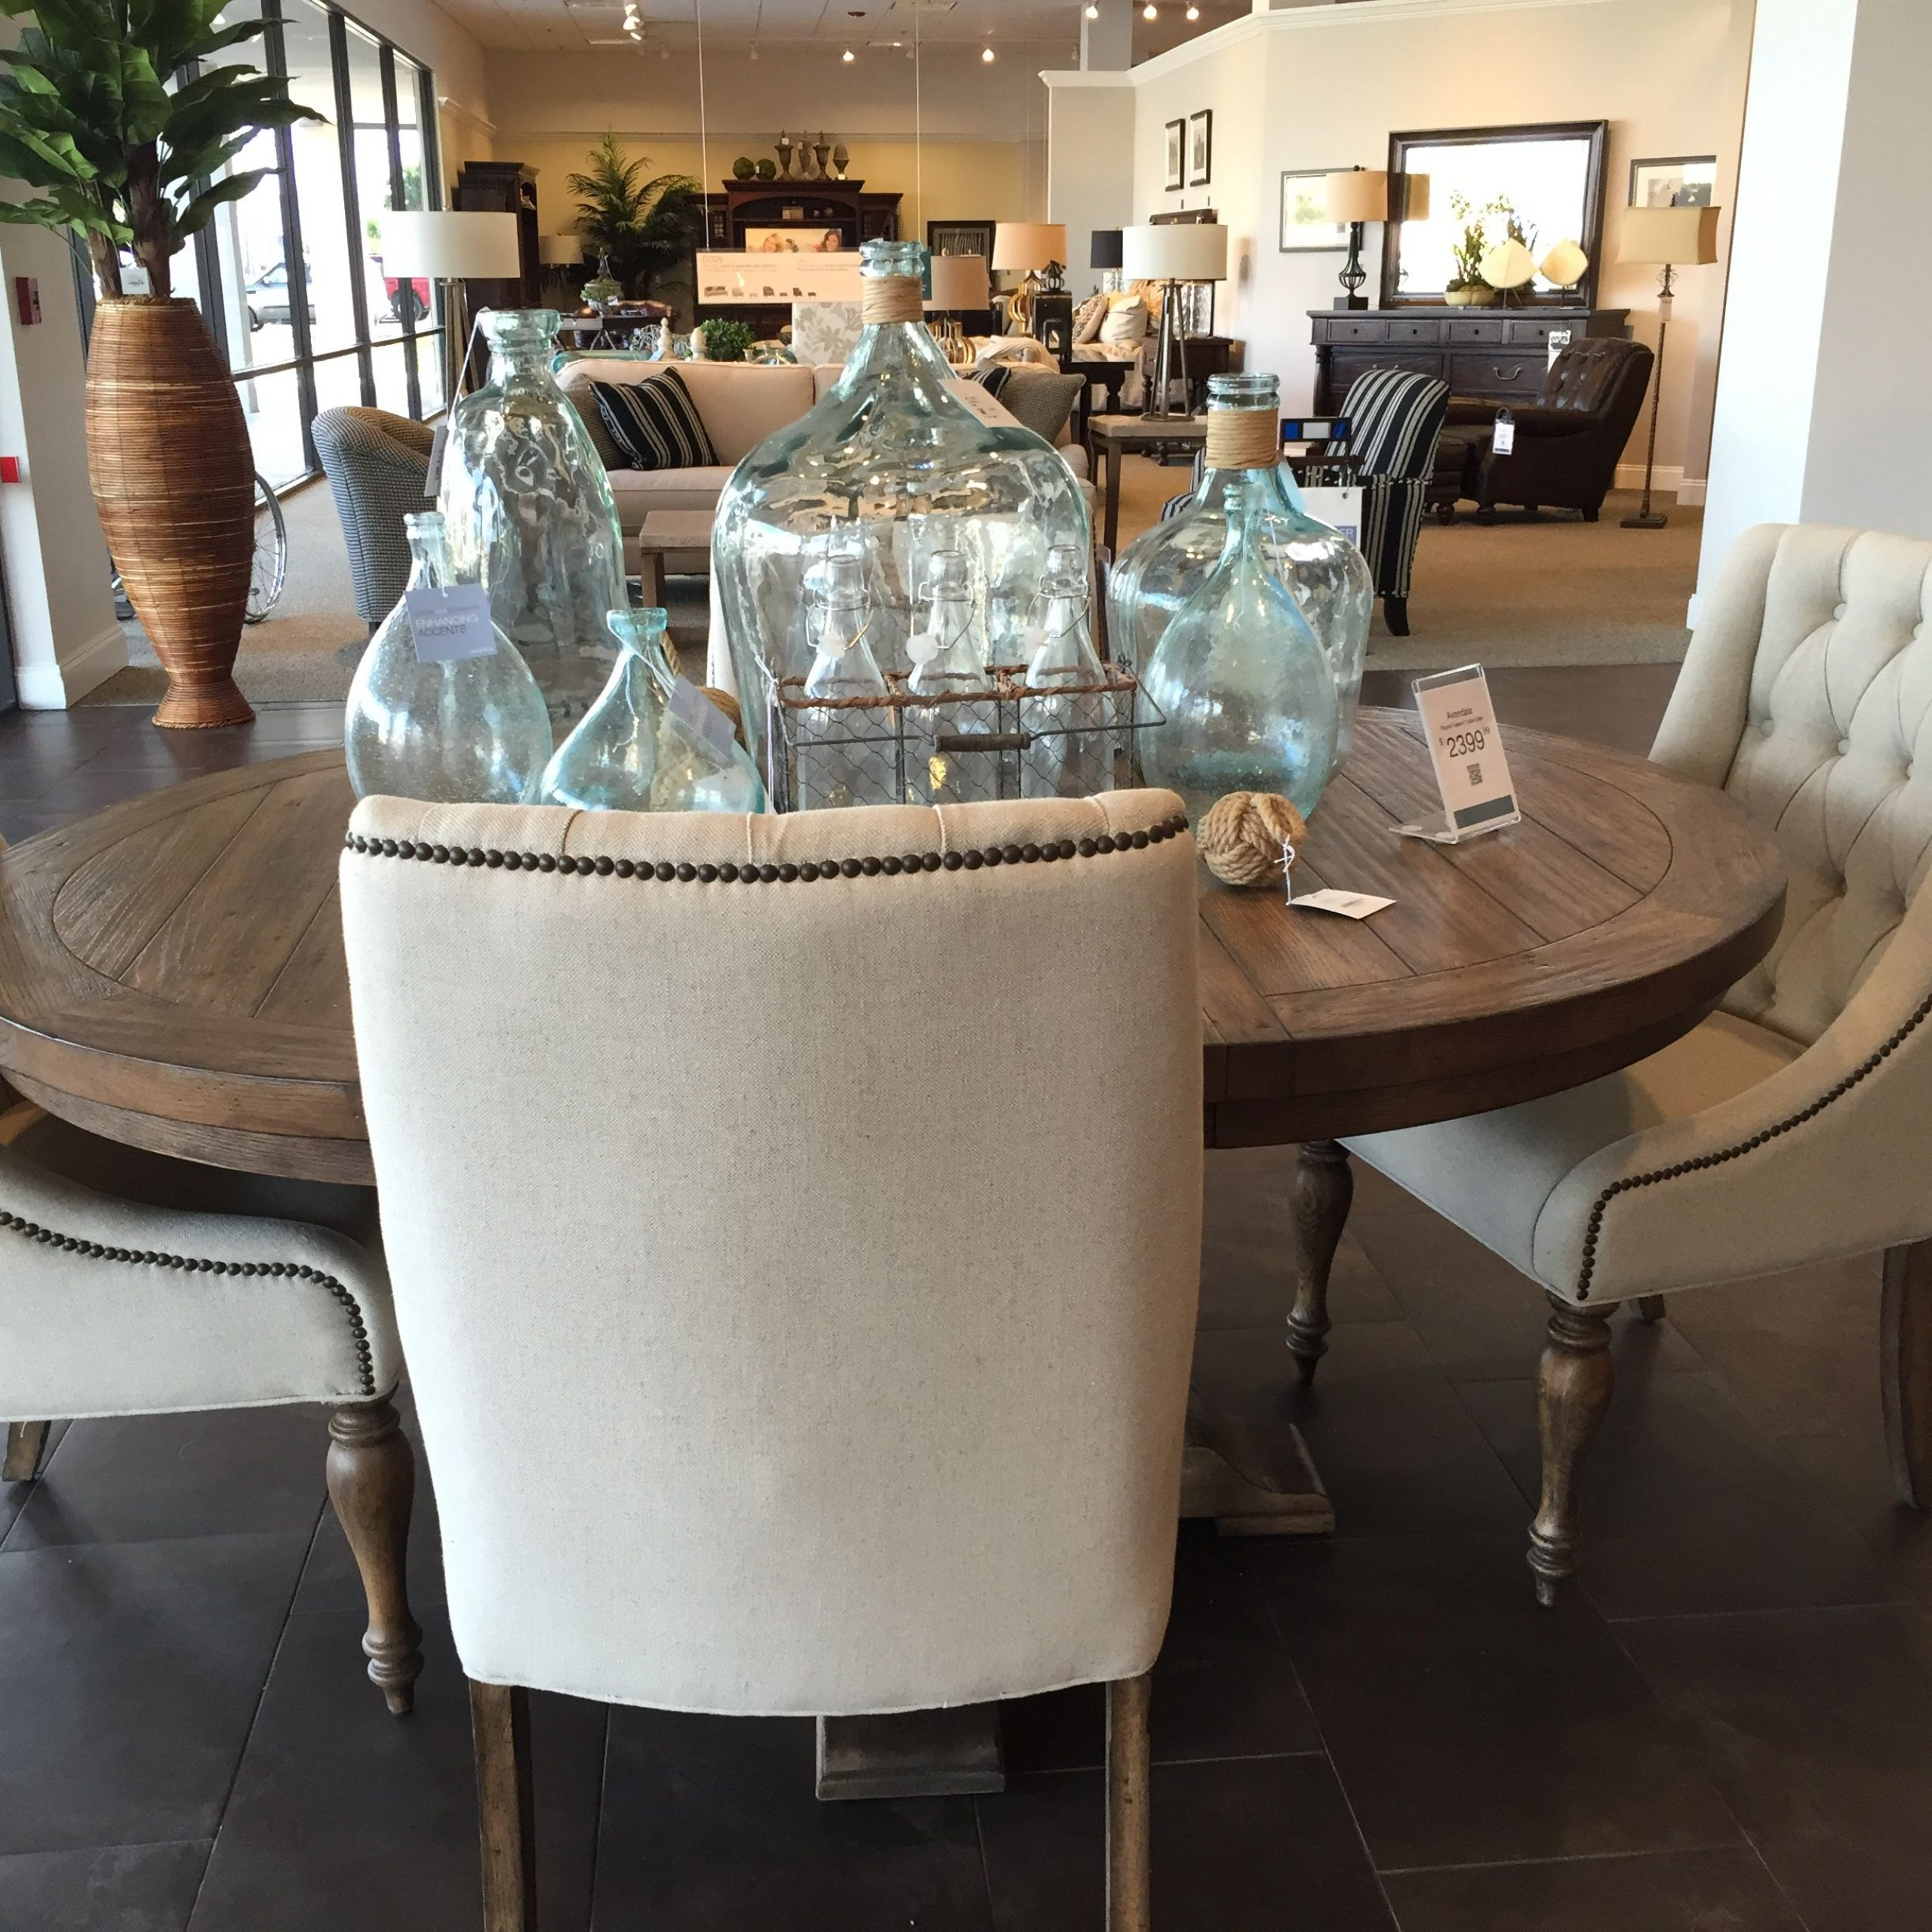 Havertys Avondale Dining Table | Dining Room Table, Dining Inside 2018 Avondale Dining Tables (View 8 of 25)